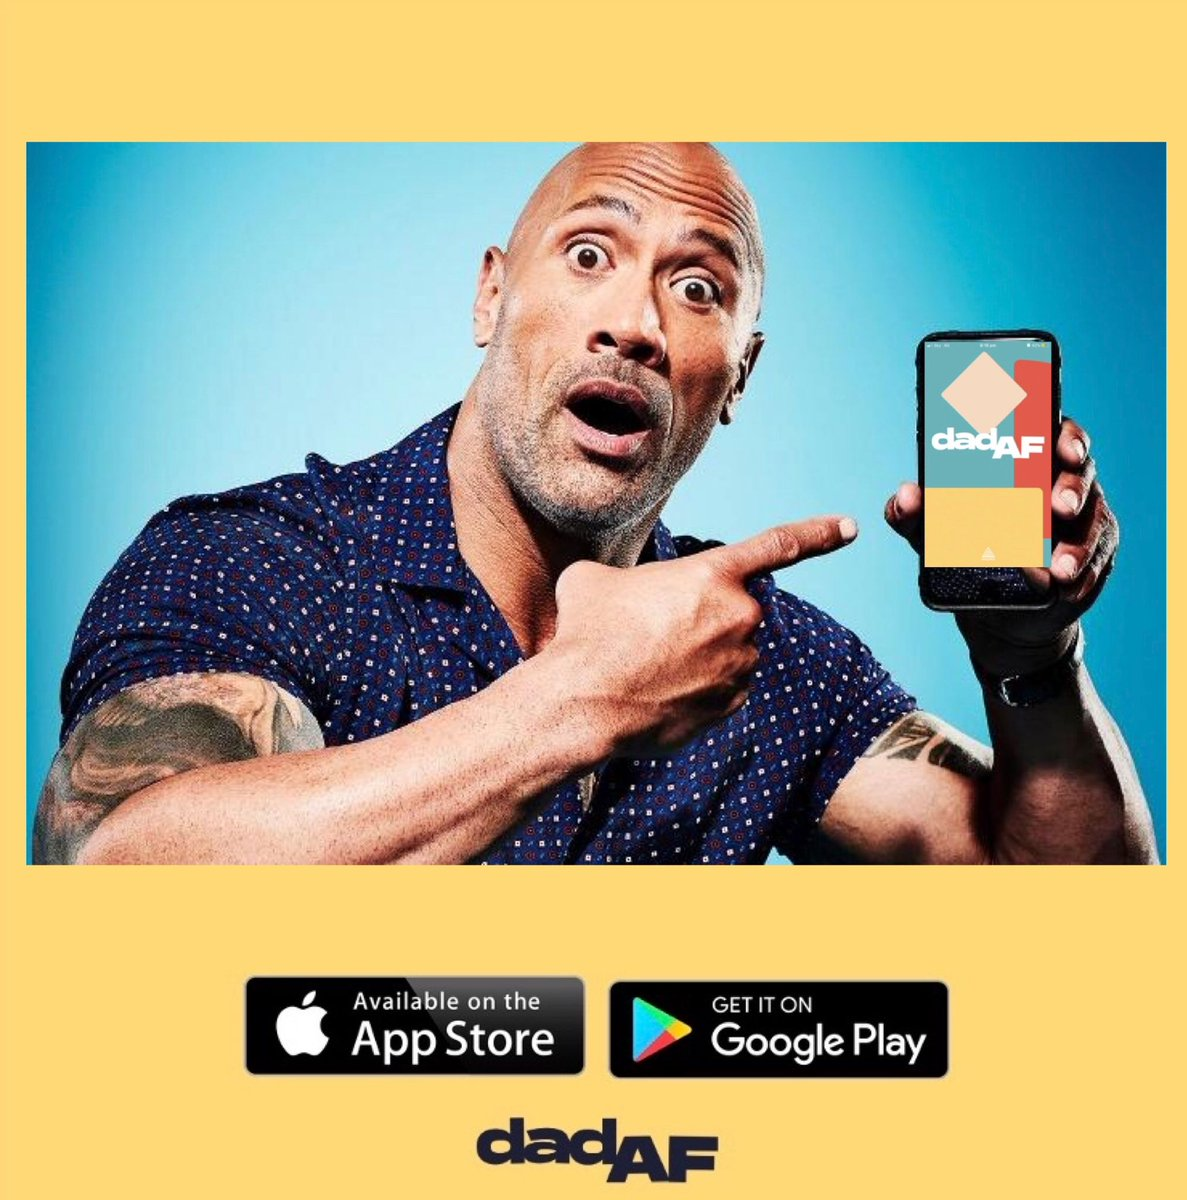 Dwayne @TheRock Johnson has just discovered the Dad AF app, and he LOVES it! • • • #dad #dadaf #dadlife #dads #therock #dwayne #johnson #dwaynejohnson #parenting #dadcommunity #dadnetwork #parent #wwe #wrestling #movies #tvpic.twitter.com/AEQM3bdmlQ